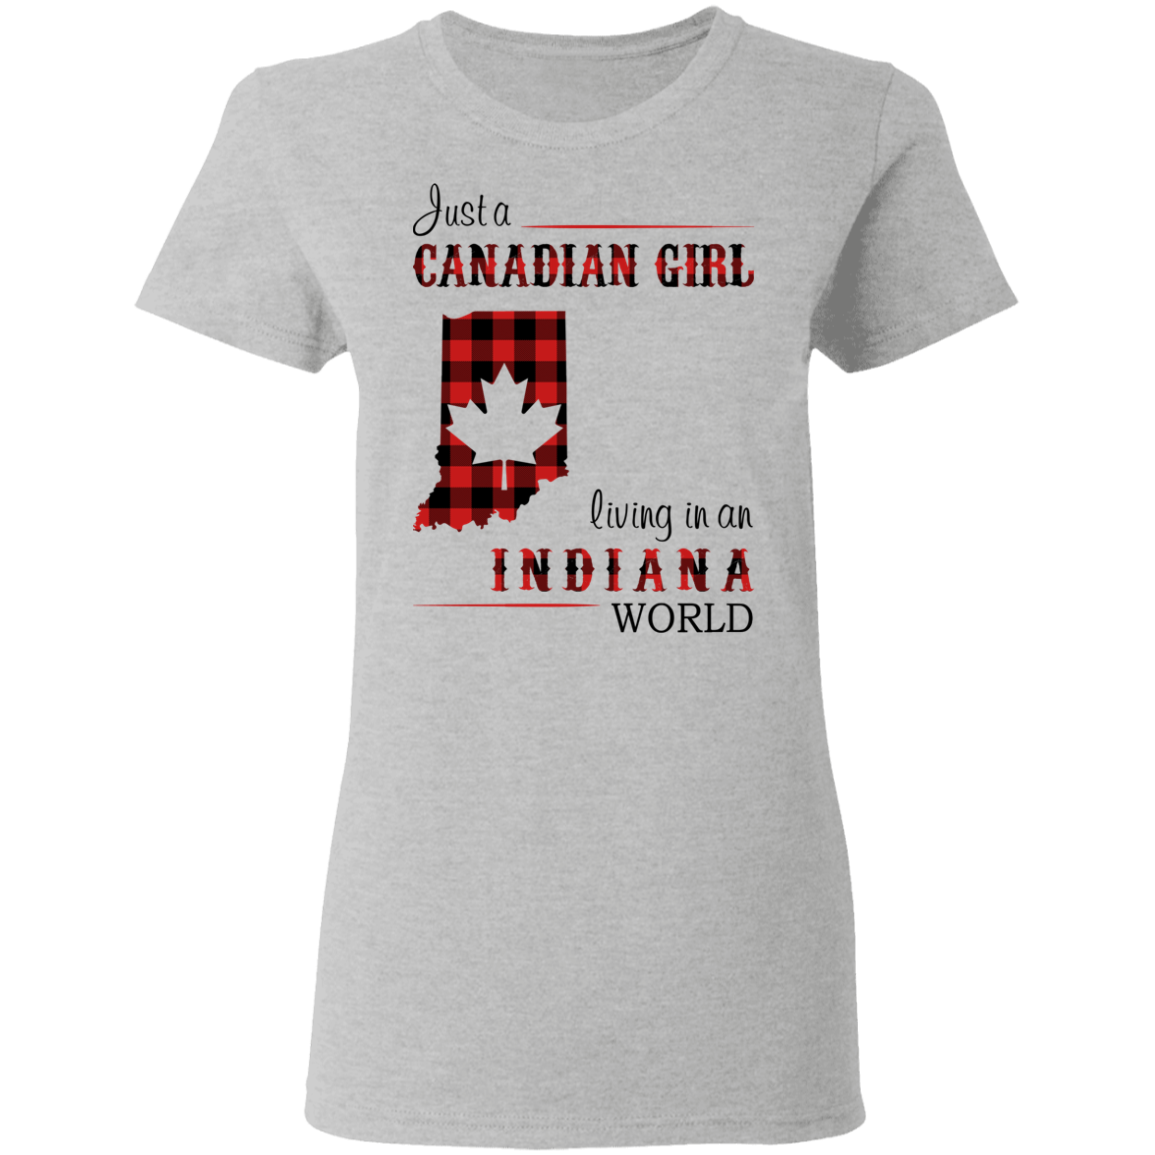 JUST A CANADIAN GIRL LIVING IN AN INDIANA WORLD